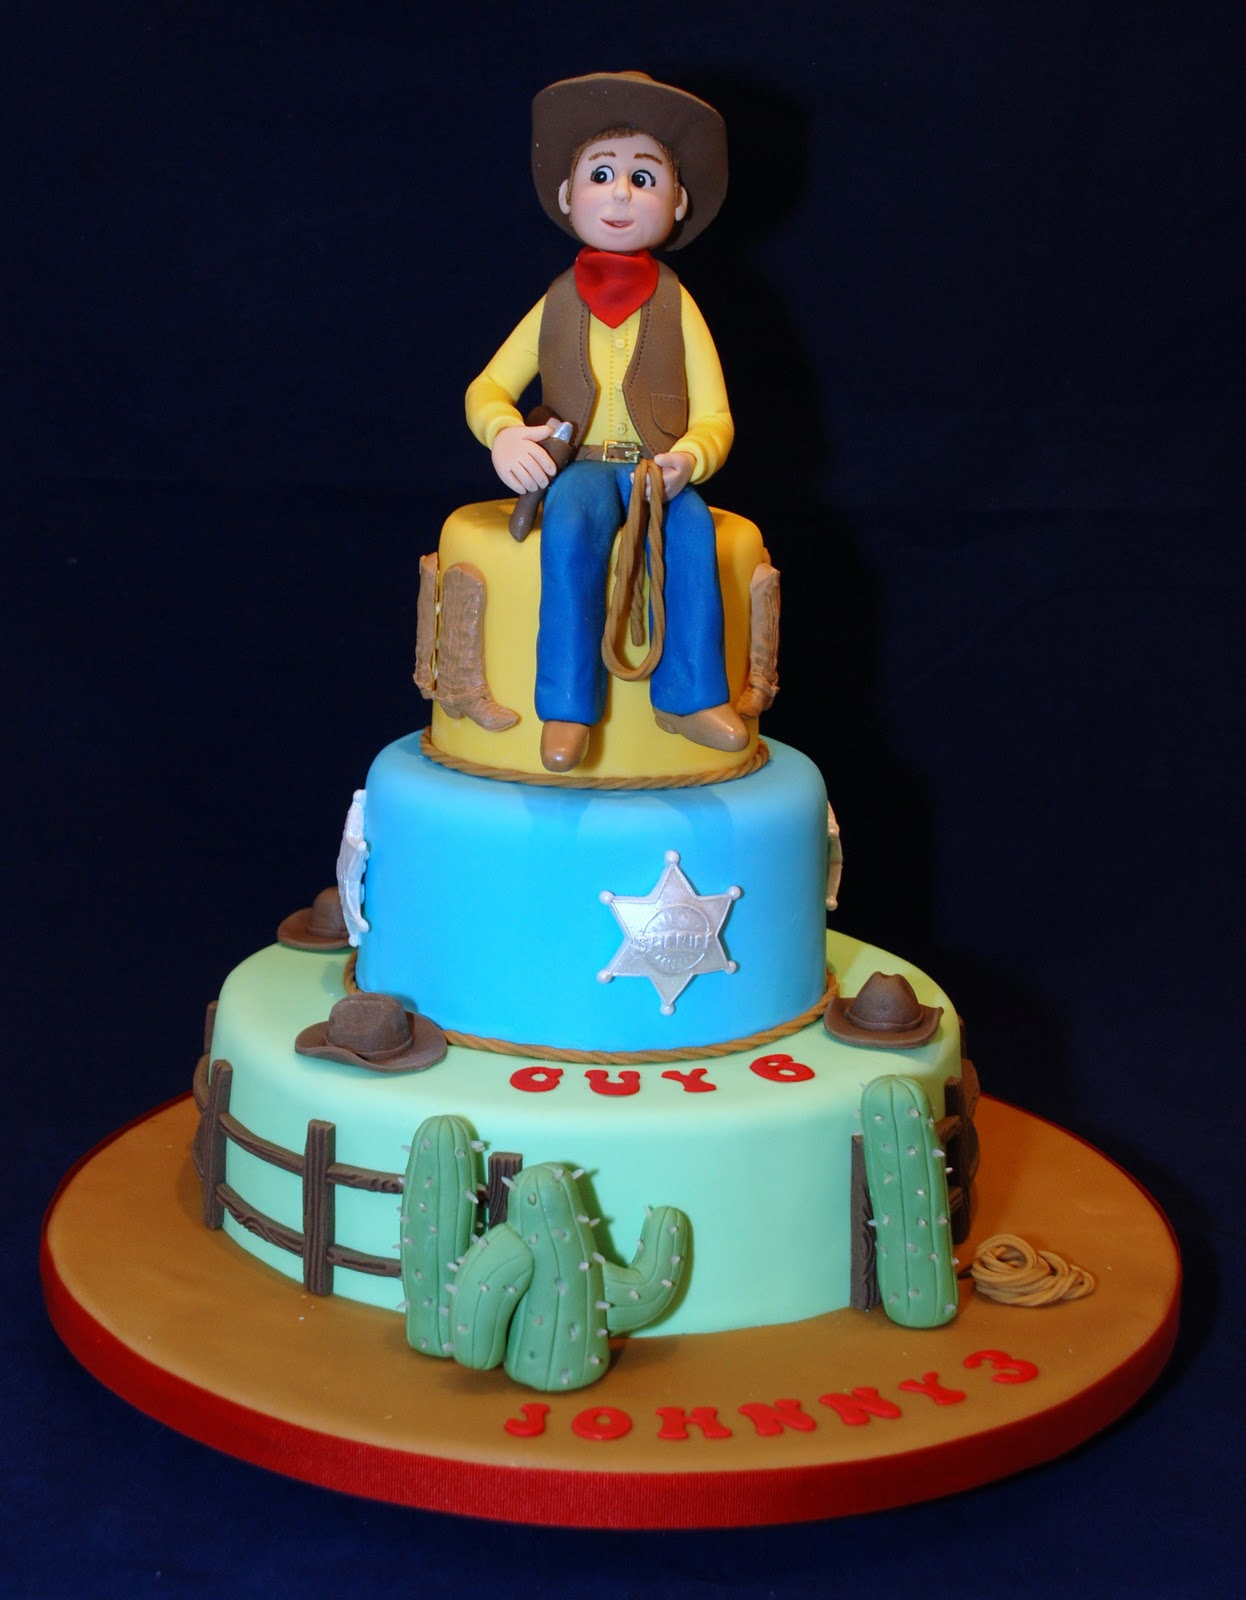 Cake Decorating Course Walsall : Icing Heaven: Yee-haa cowboy!